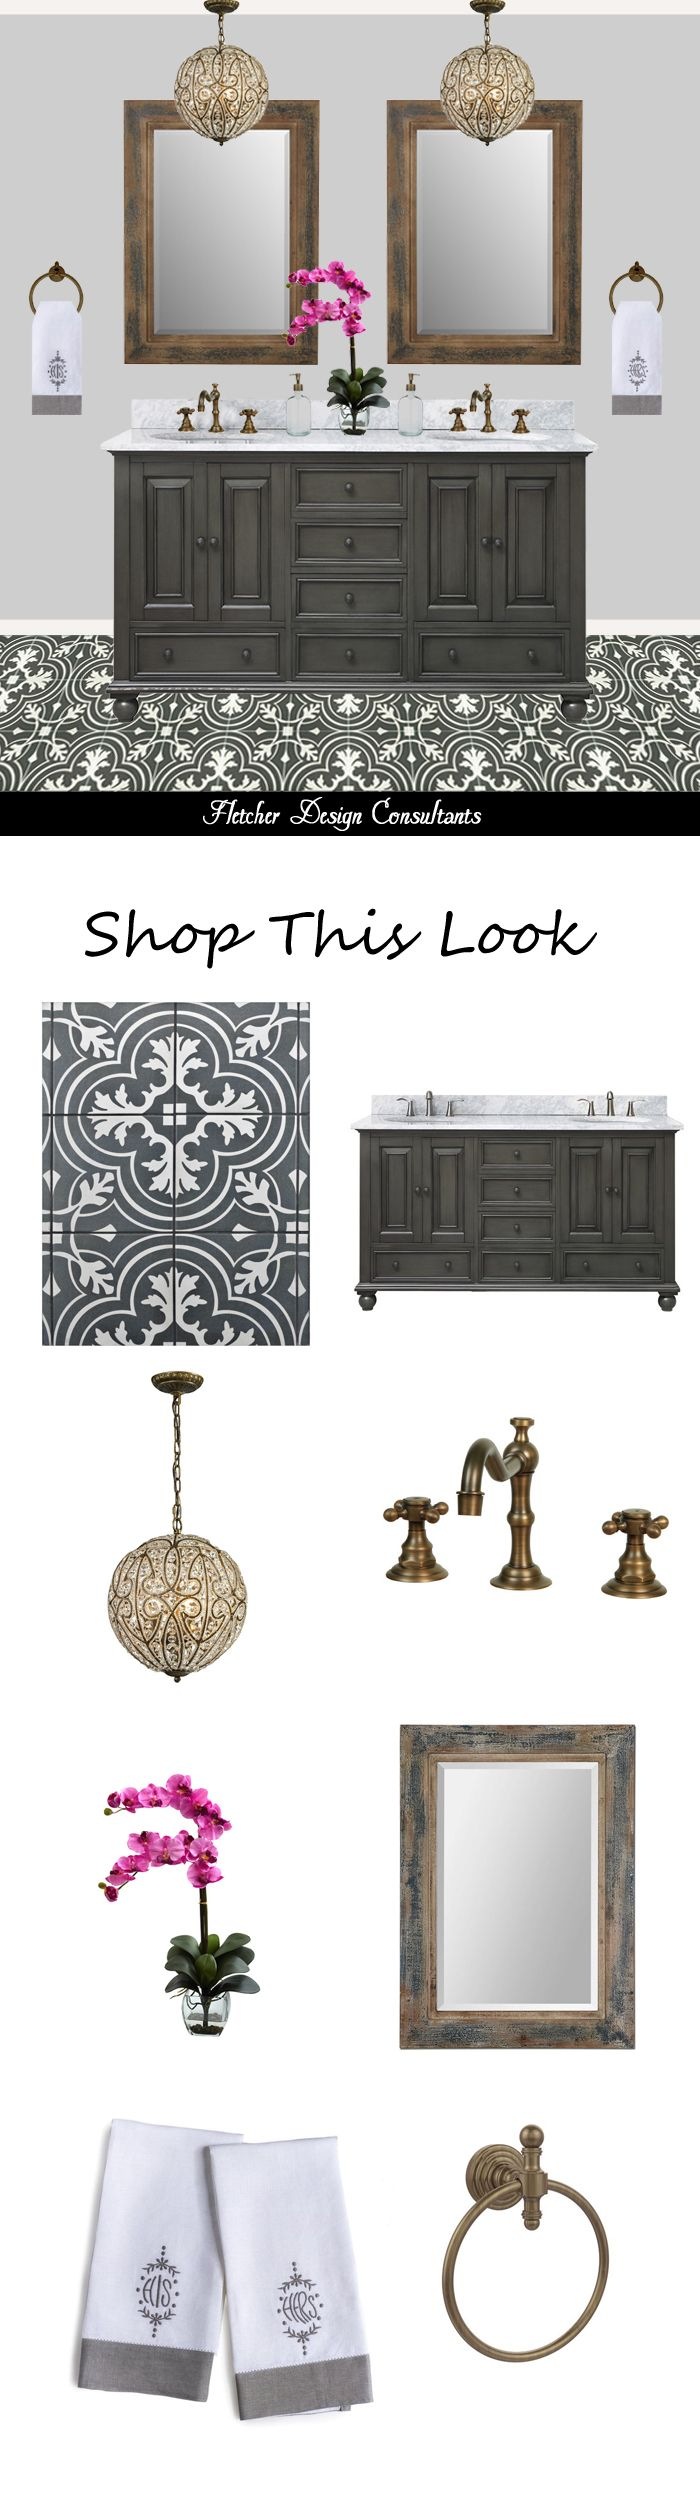 Shop This Look - Traditional Black, White, and Gray Bathroom - cement encaustic tile, antique brass chandelier, faucet, marble, mirror, ideas, decorating